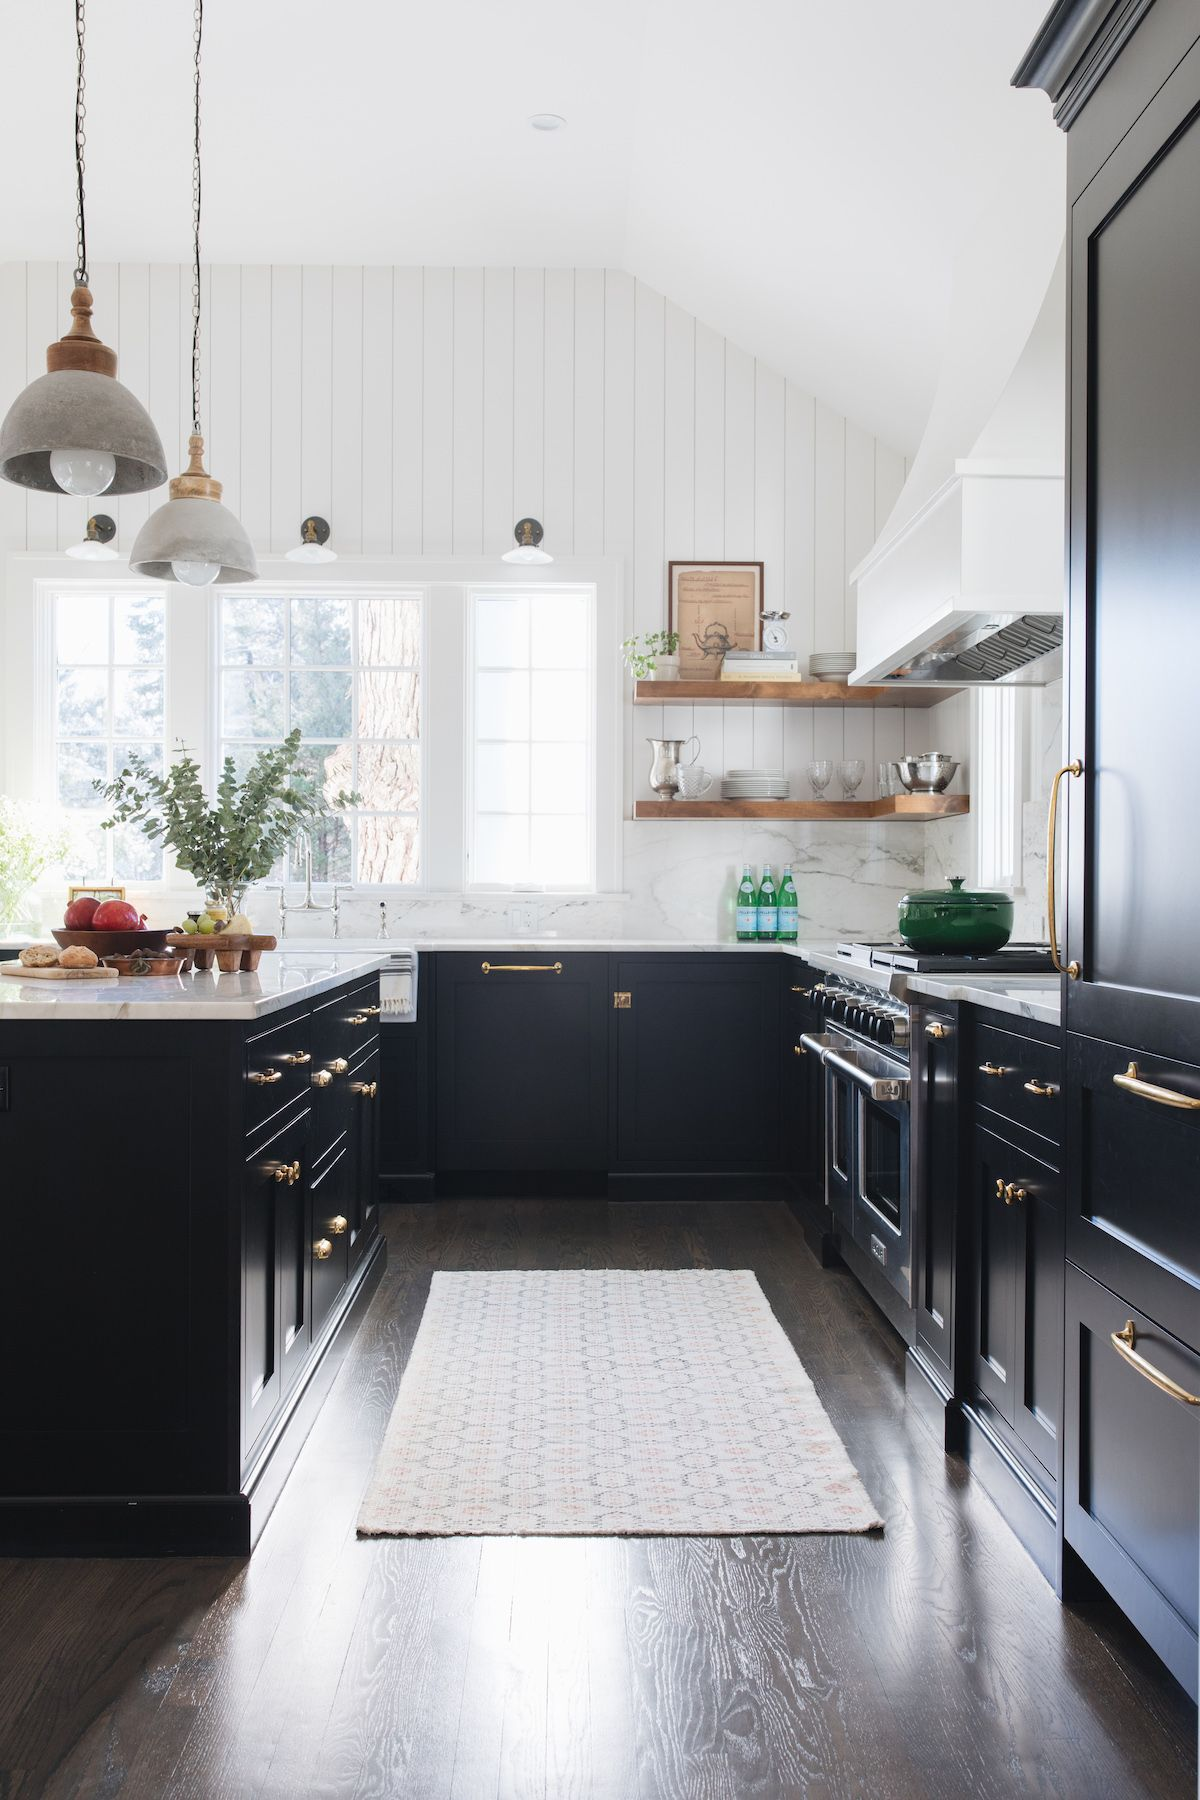 Today We Re Welcoming Our Newest Creatives To The List When Alessia And Sarah Of Redesign Home M In 2020 Interior Design Kitchen New Kitchen Cabinets Kitchen Interior